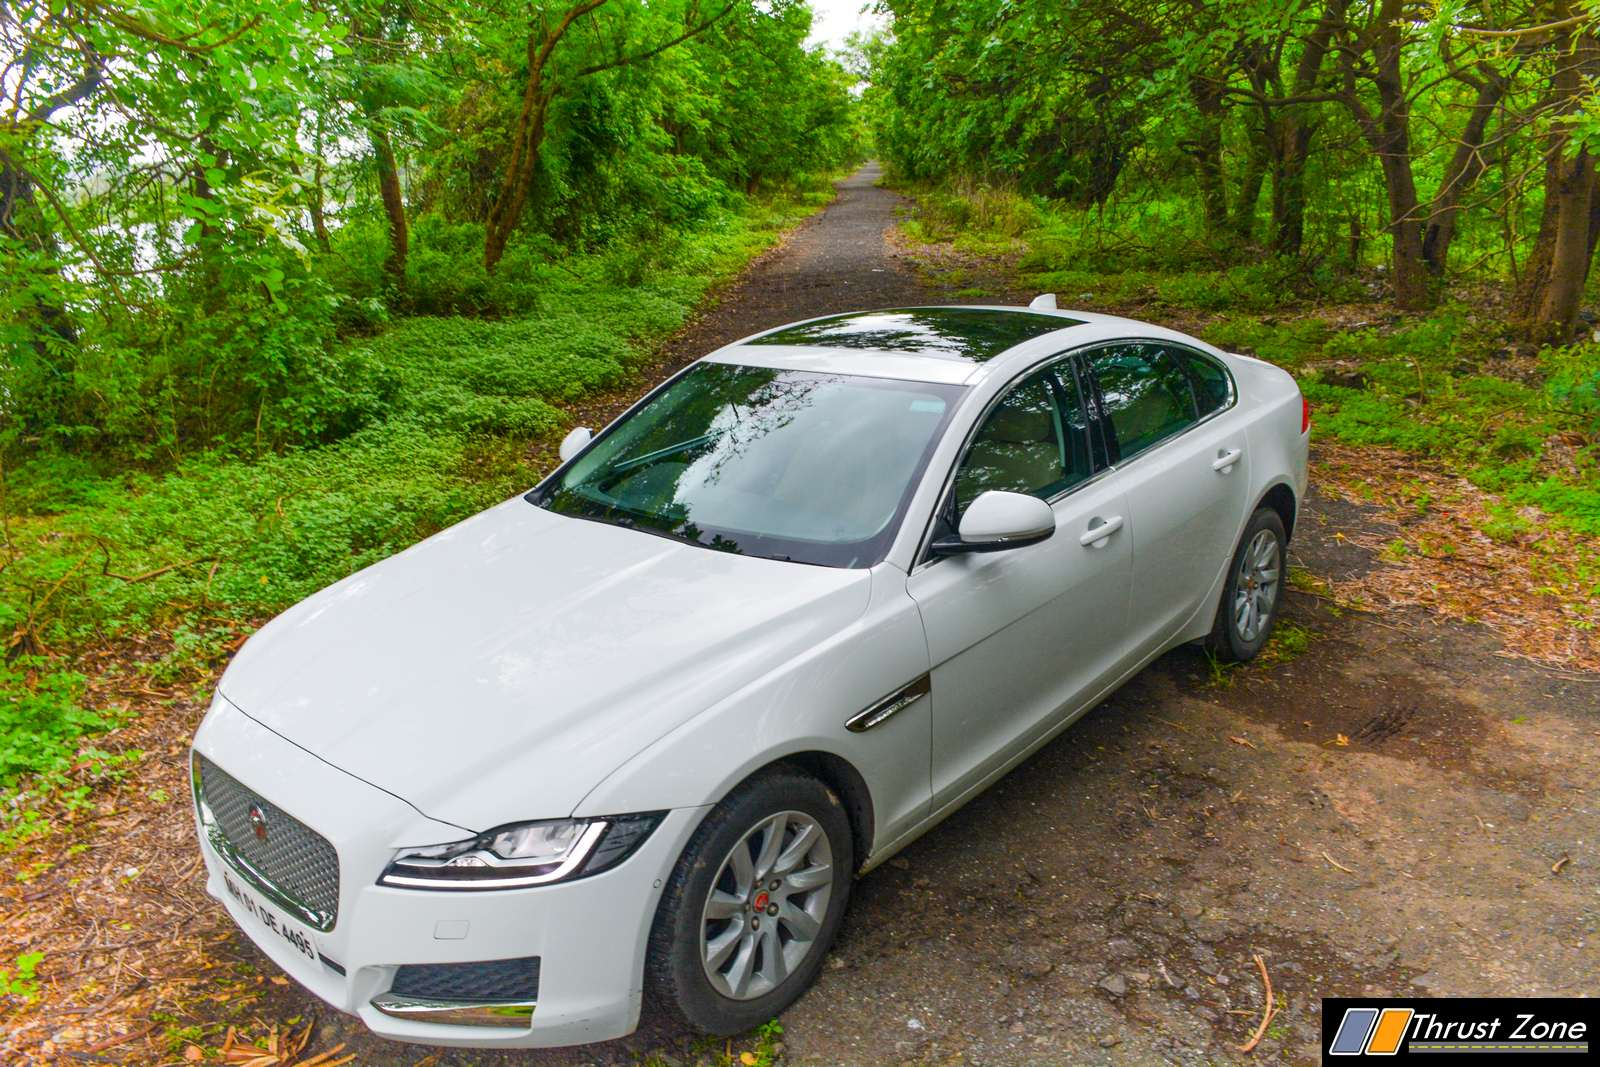 2019-Jaguar-XF-Petrol-prestige-review-9